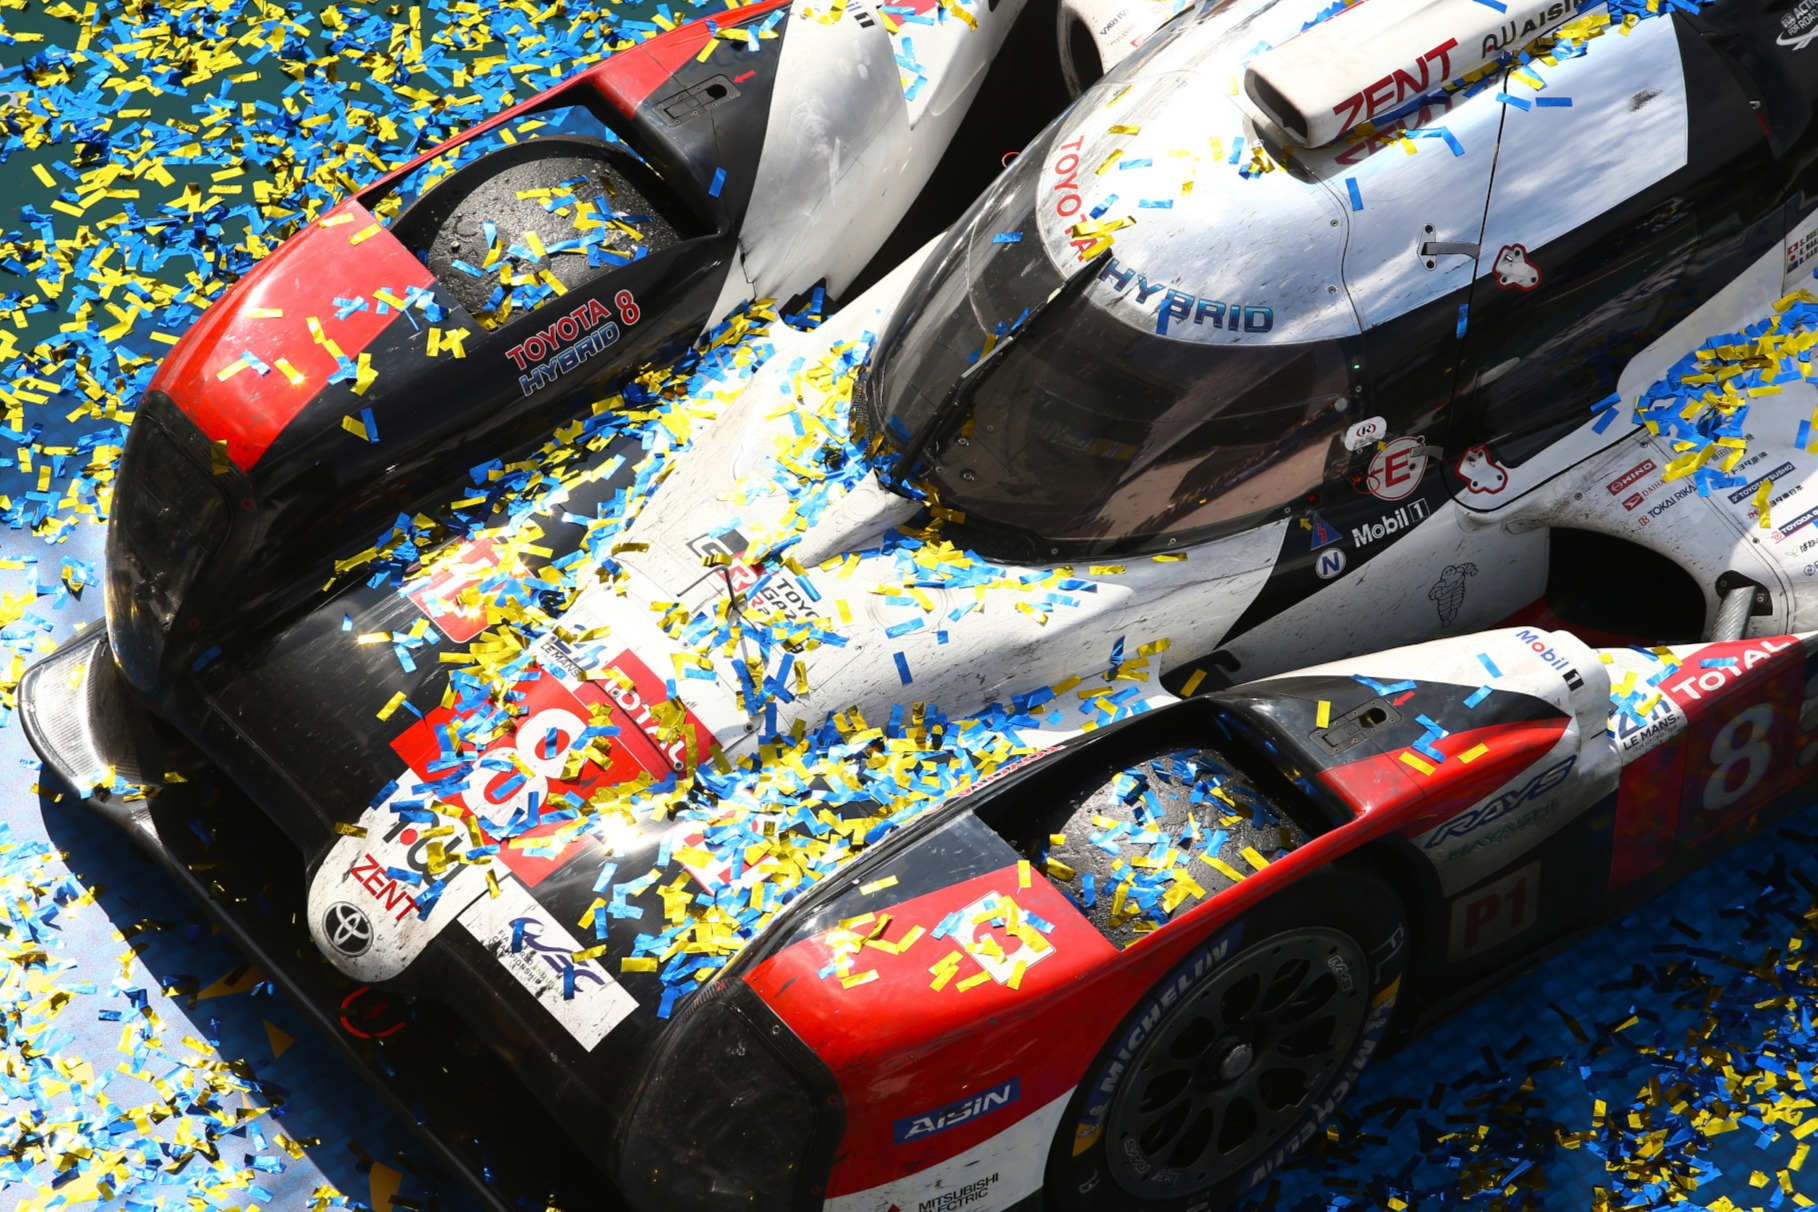 The #8 Toyota is unbeaten in the past three iterations of Le Mans, with Buemi and Nakajima joined by Alonso and subsequently Hartley